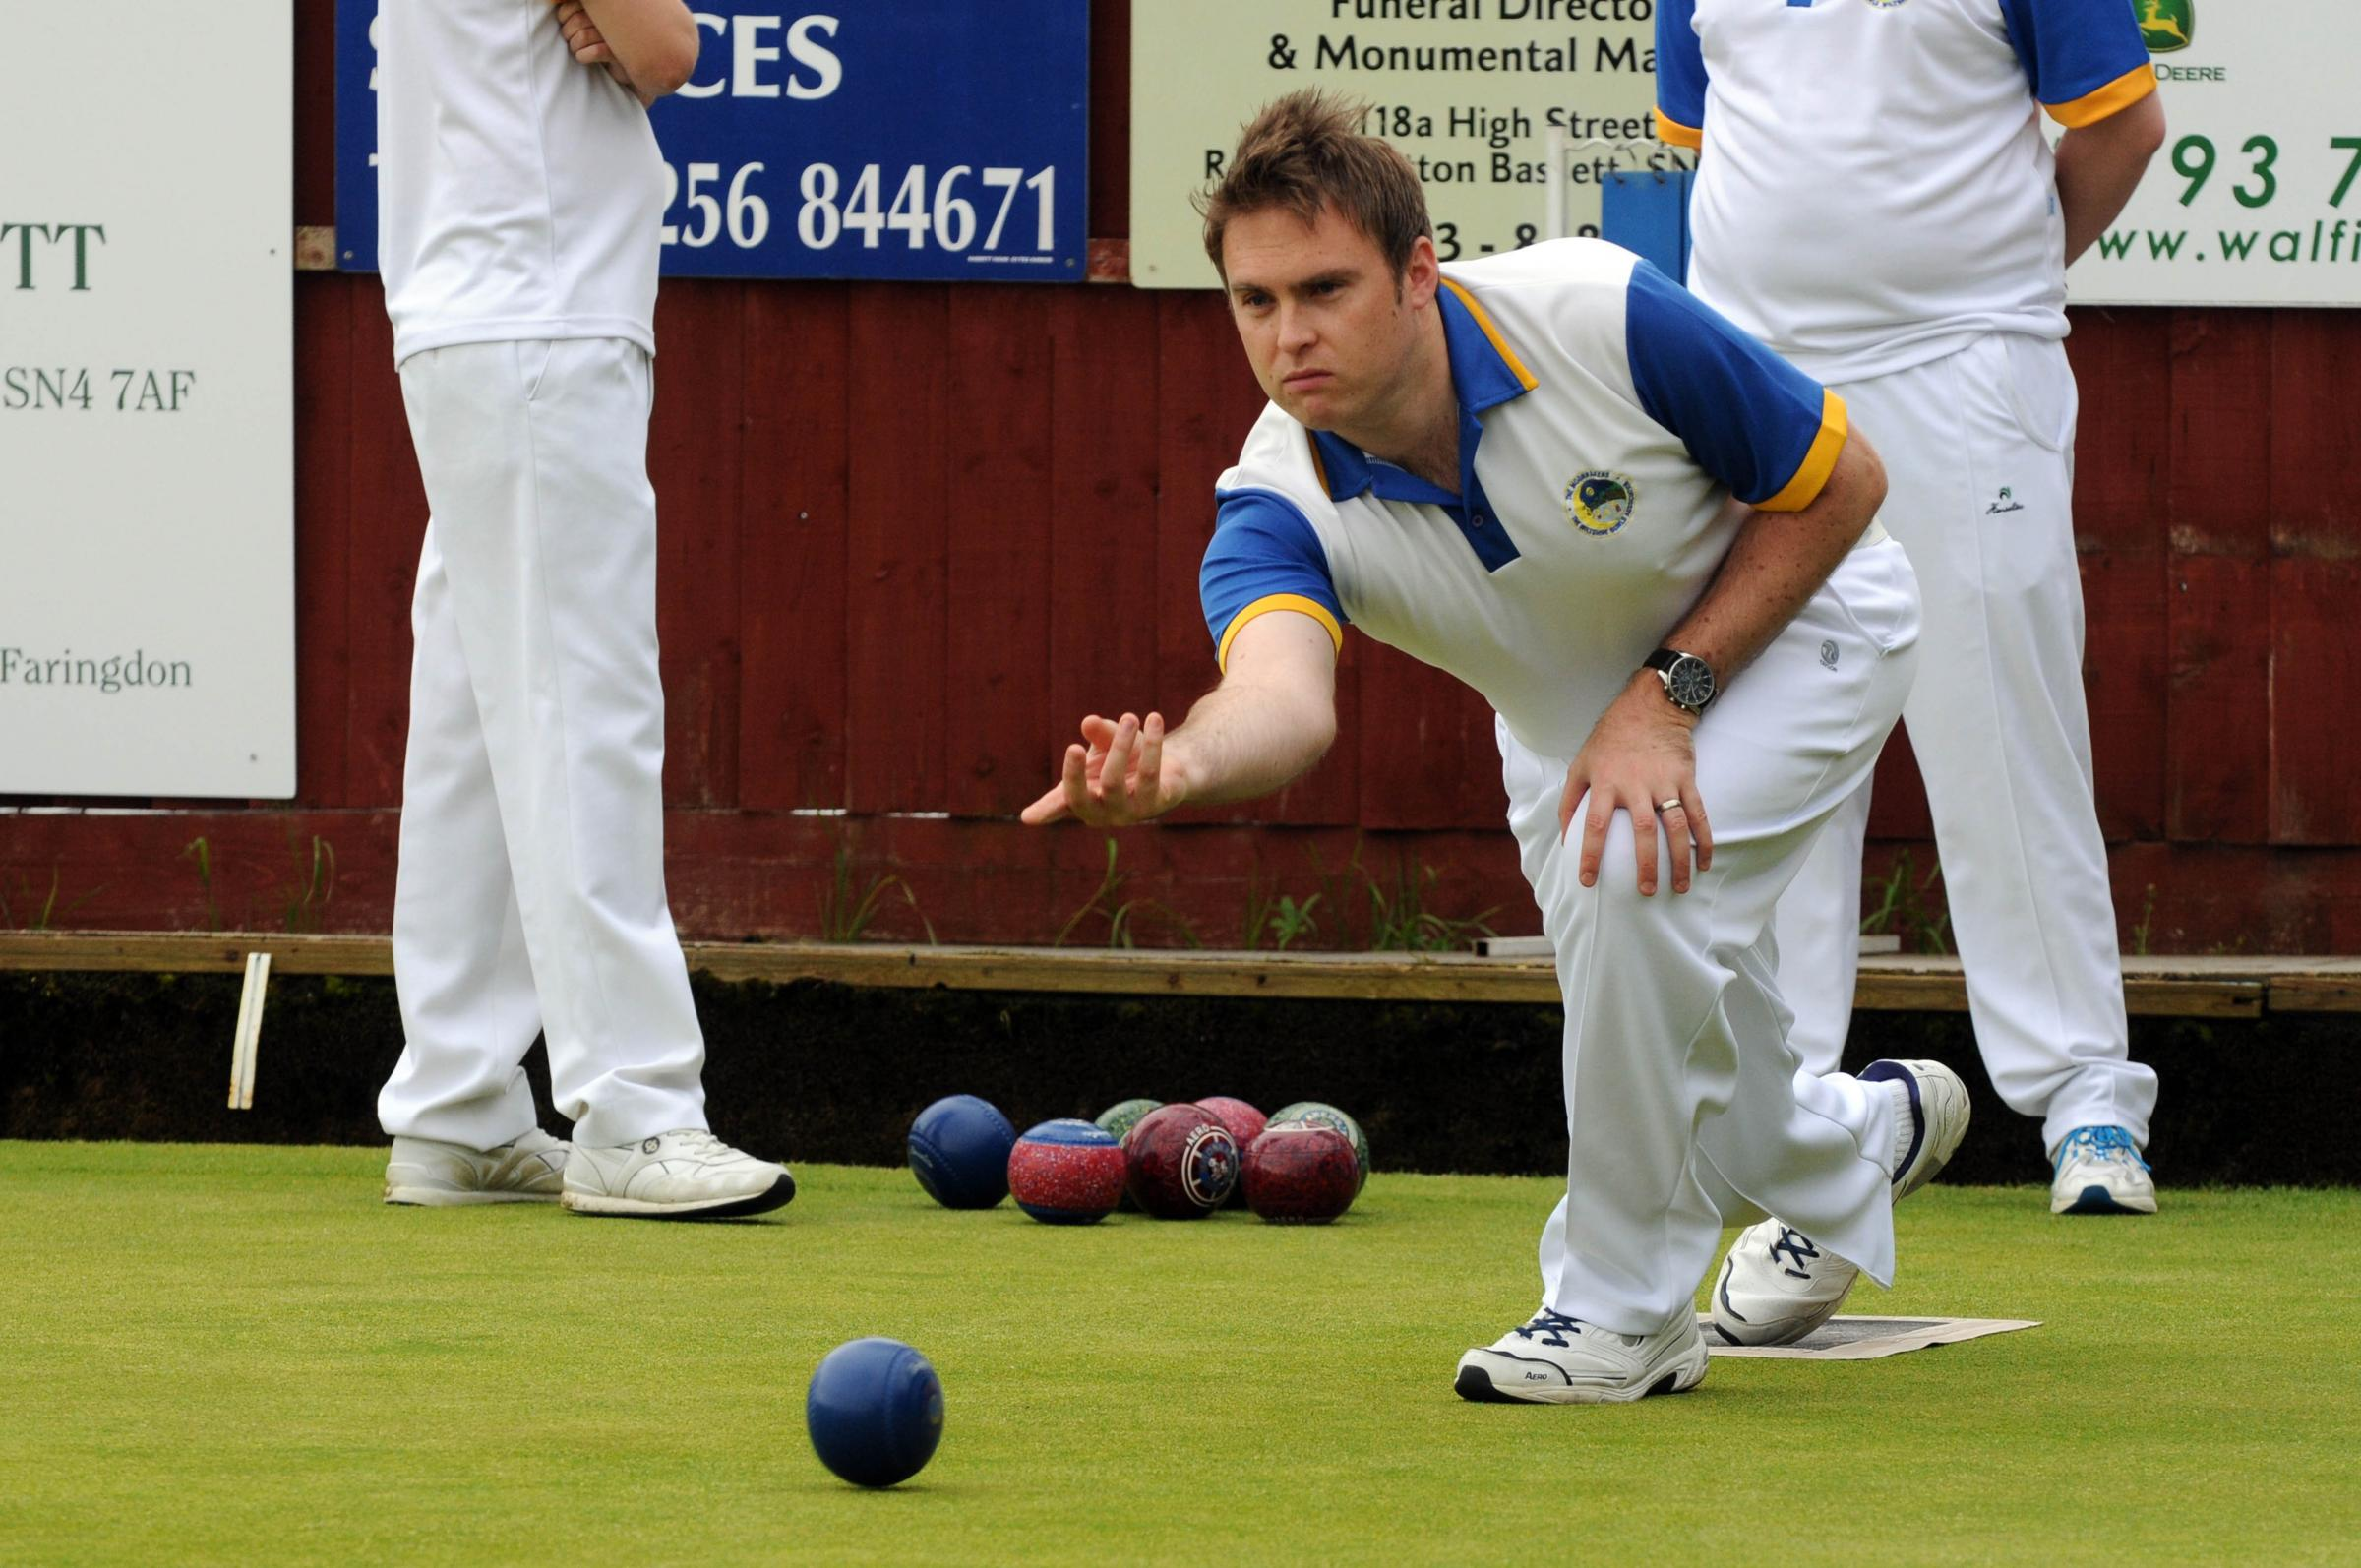 Bowls - Wiltshire BC v Dorset. Pic shows Wayne Snook for Wiltshire..